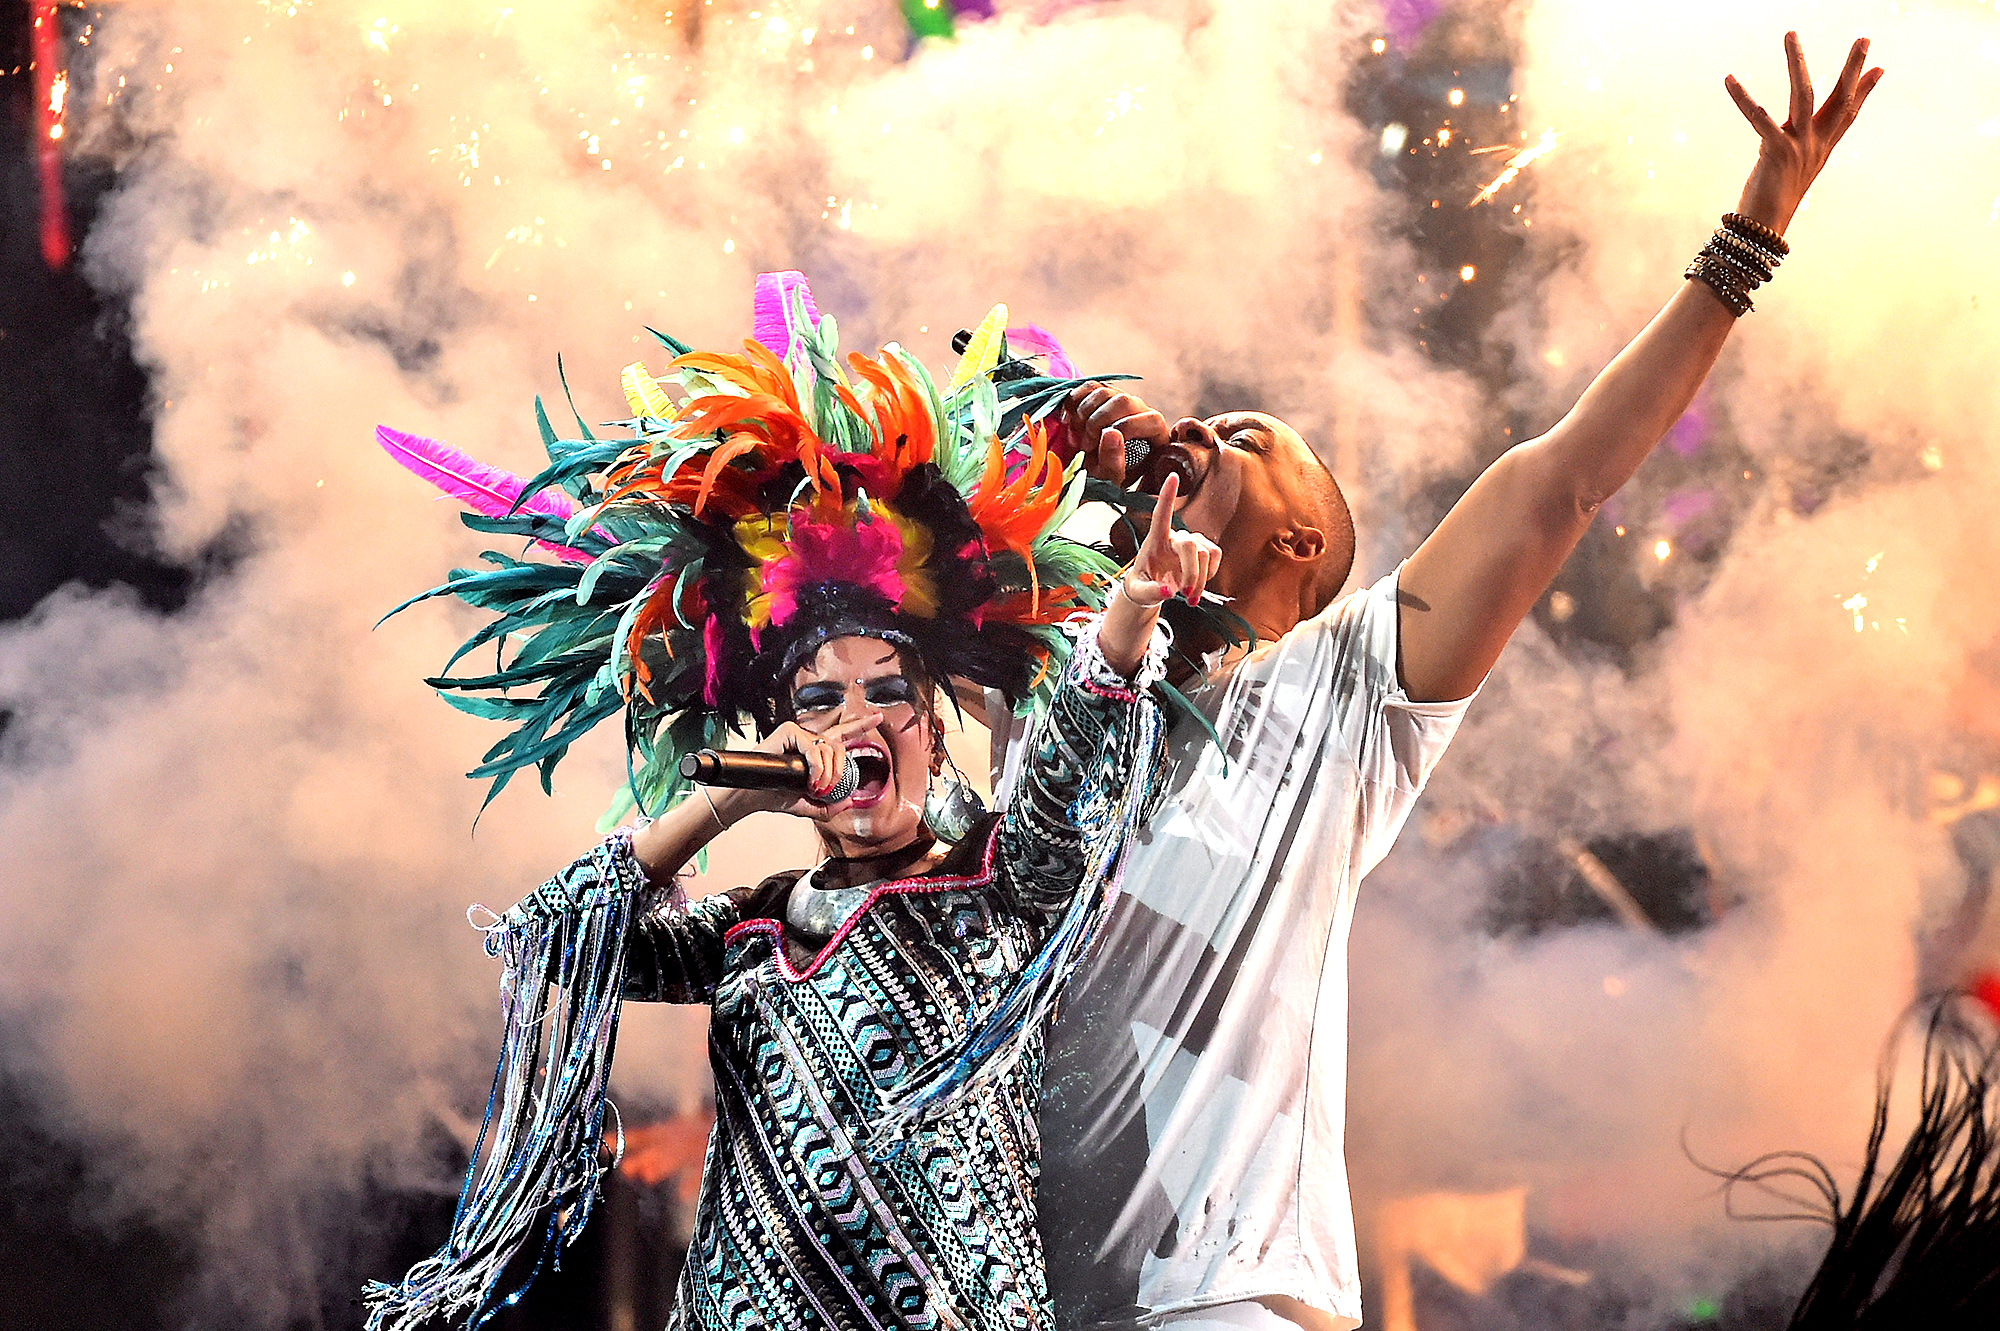 Liliana Saumet of Bomba Estereo and Will Smith perform onstage during the 16th Latin GRAMMY Awards at the MGM Grand Garden Arena on November 19, 2015 in Las Vegas, Nevada.